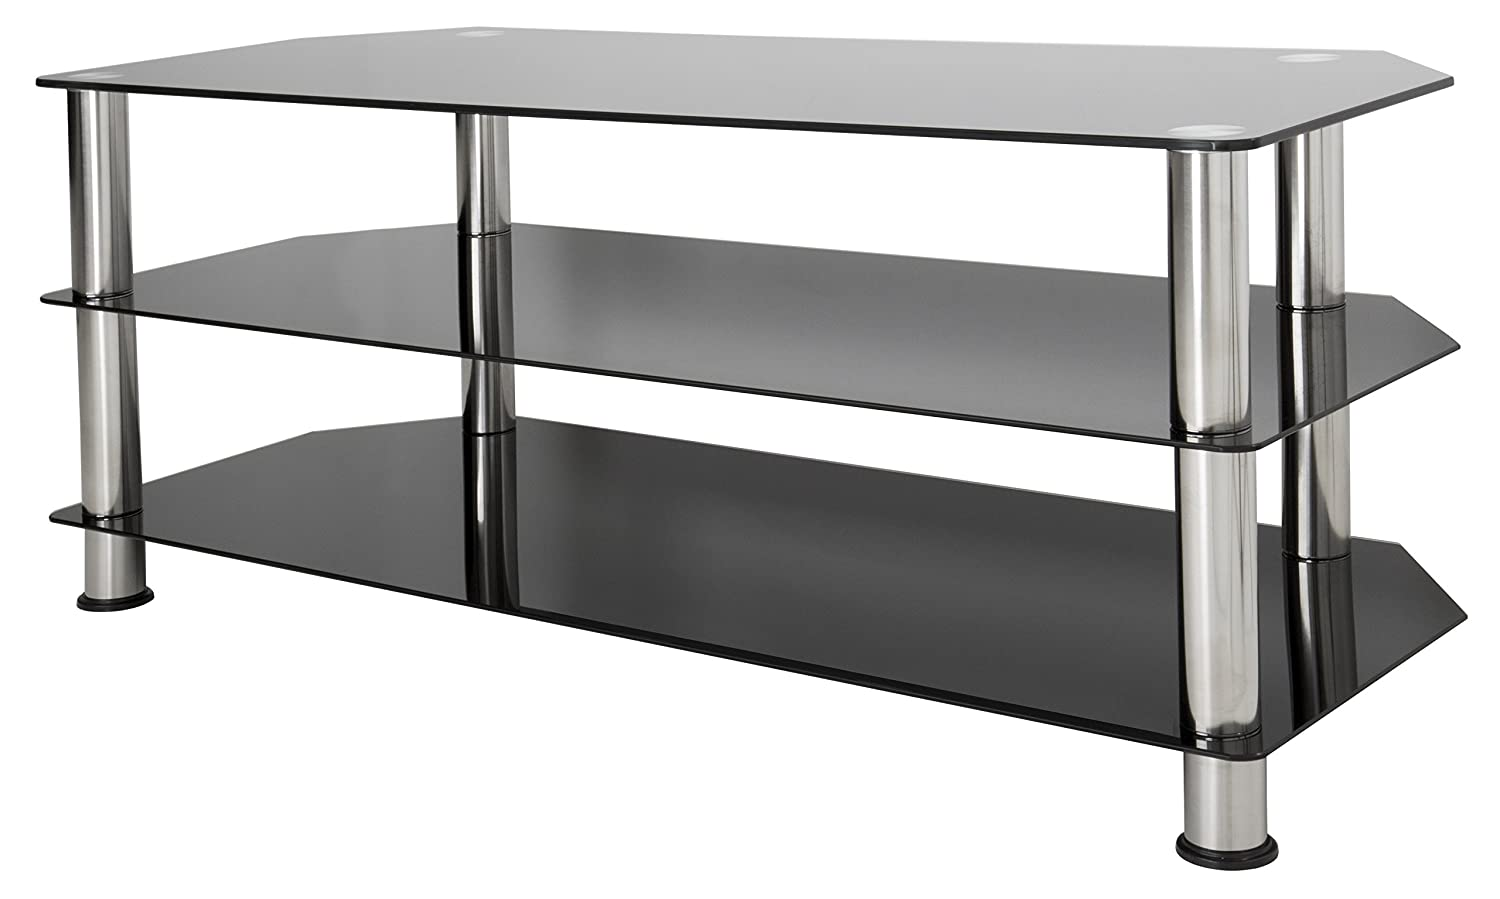 Beau Amazon.com: AVF SDC1140 A TV Stand For Up To 55 Inch TVs, Black Glass,  Chrome Legs: Home Audio U0026 Theater